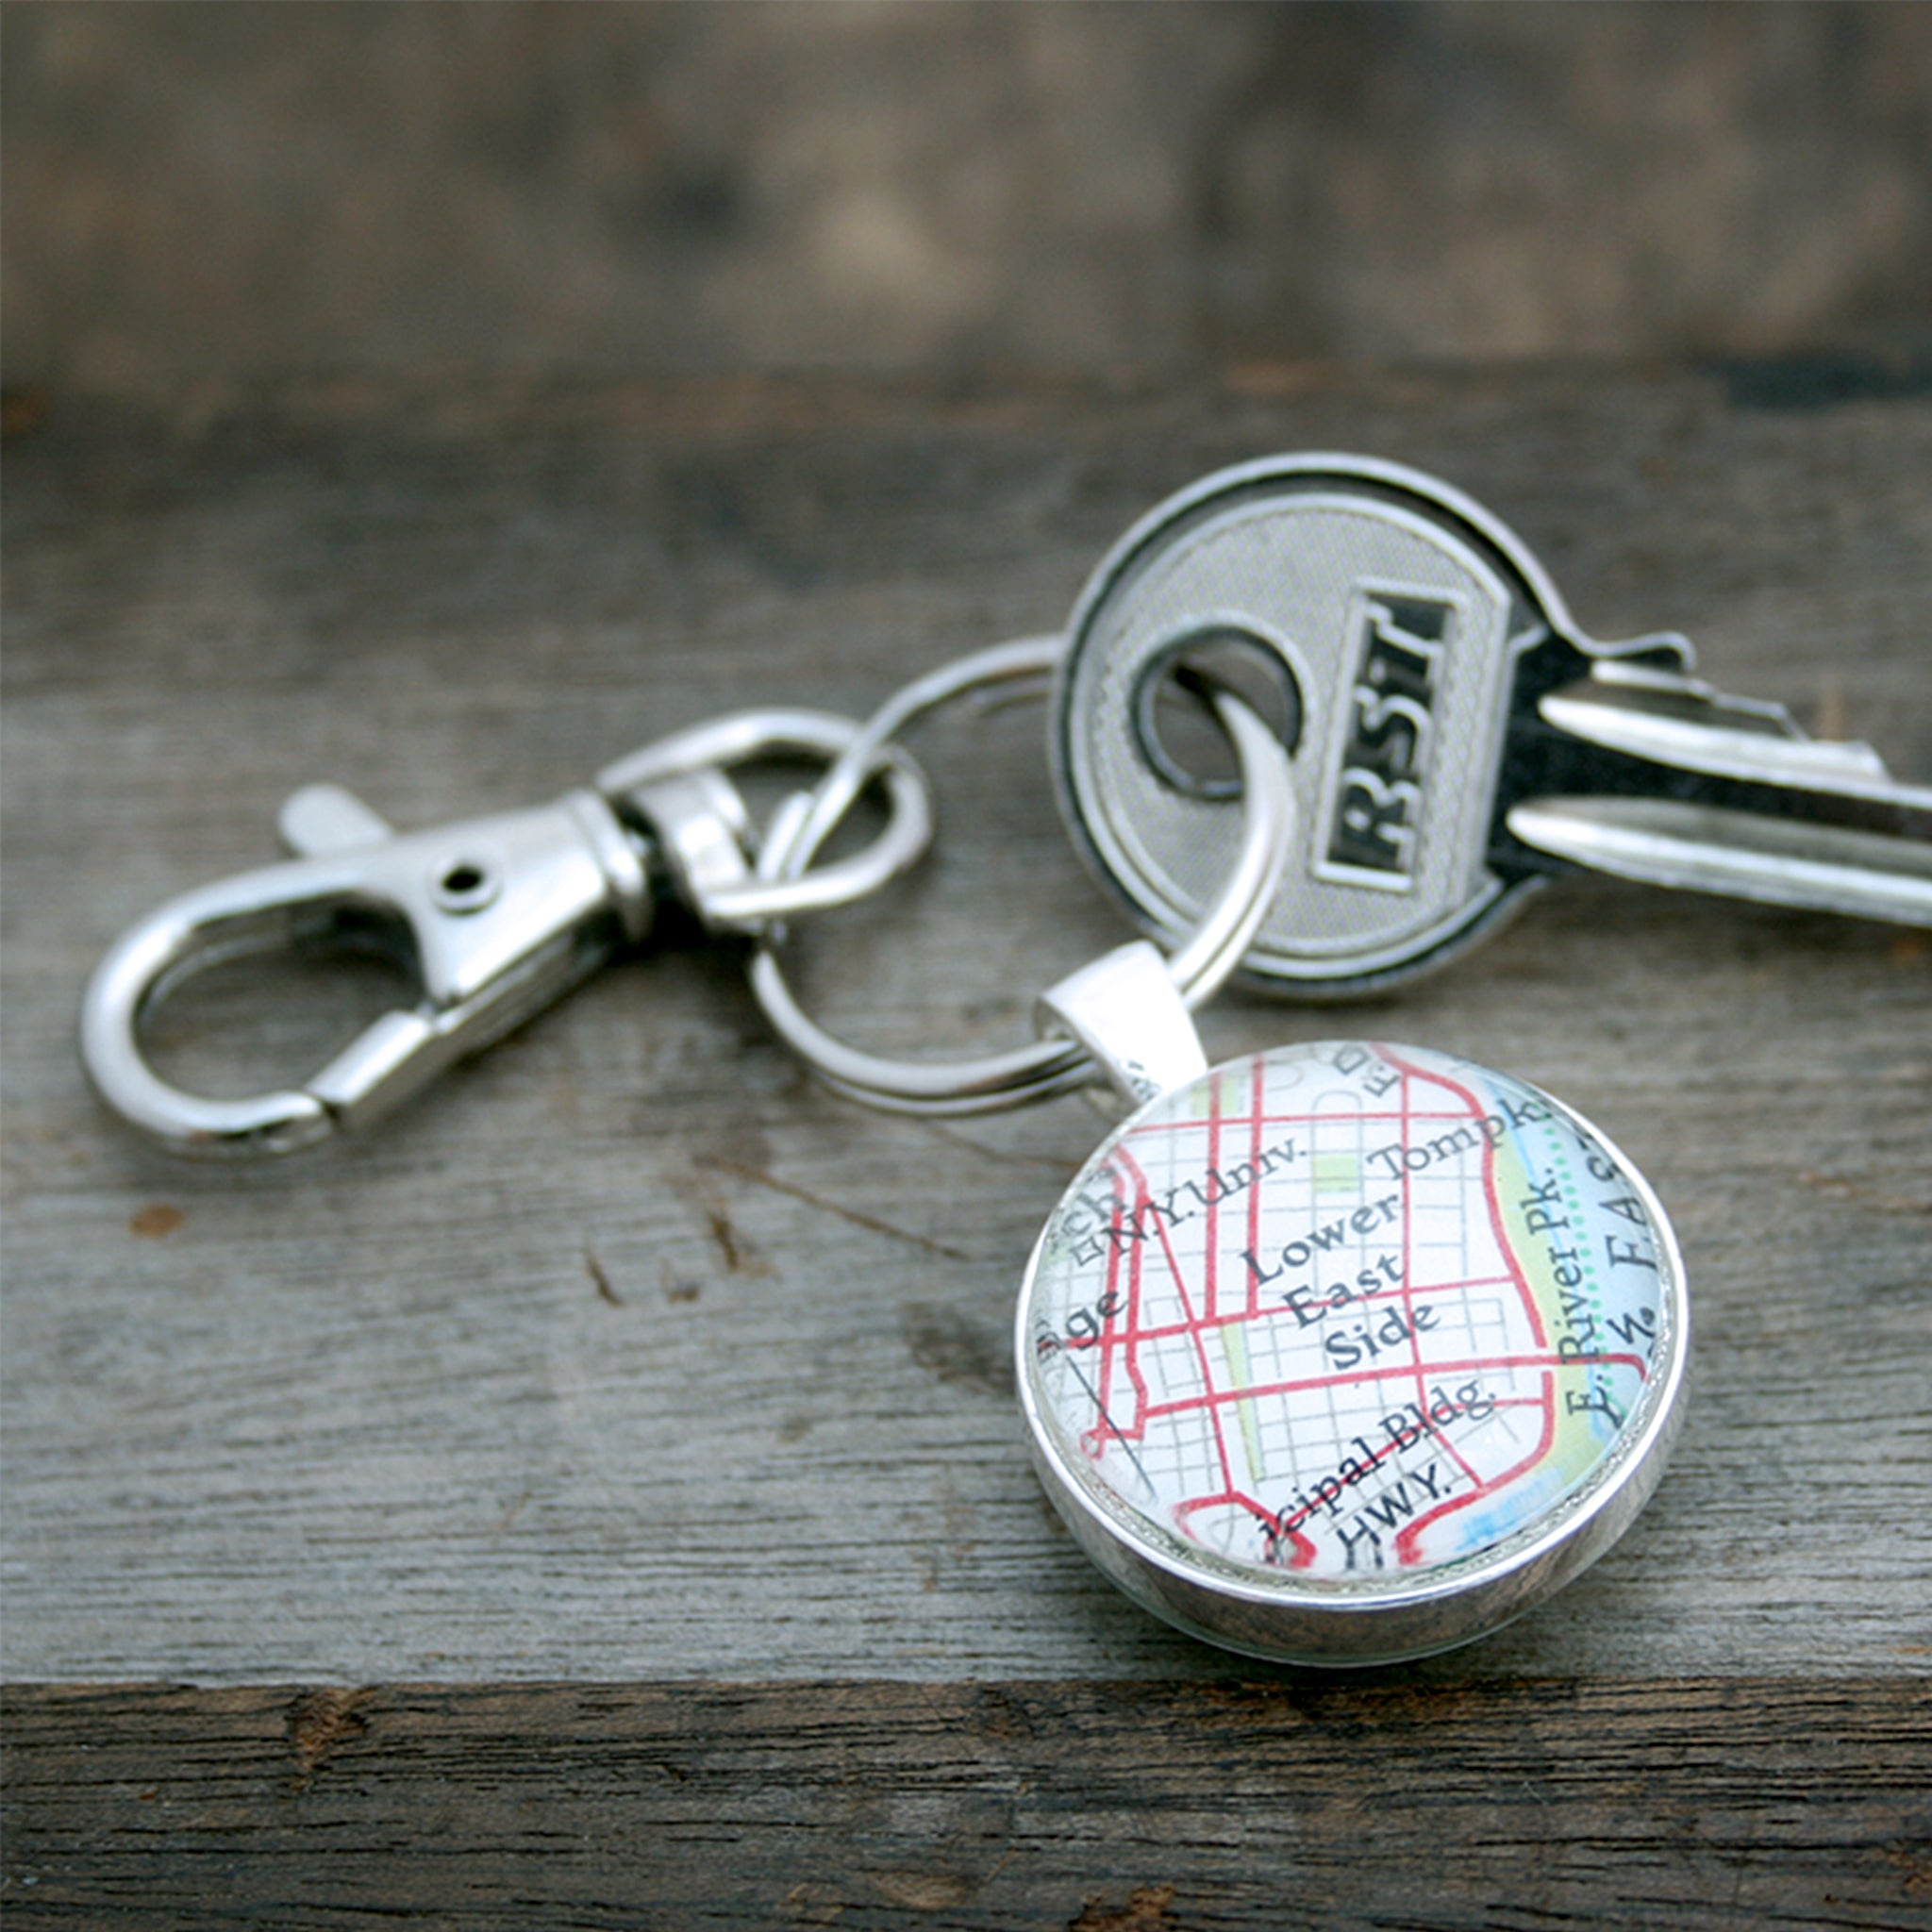 Personalised keyring in silver color featuring map of NY